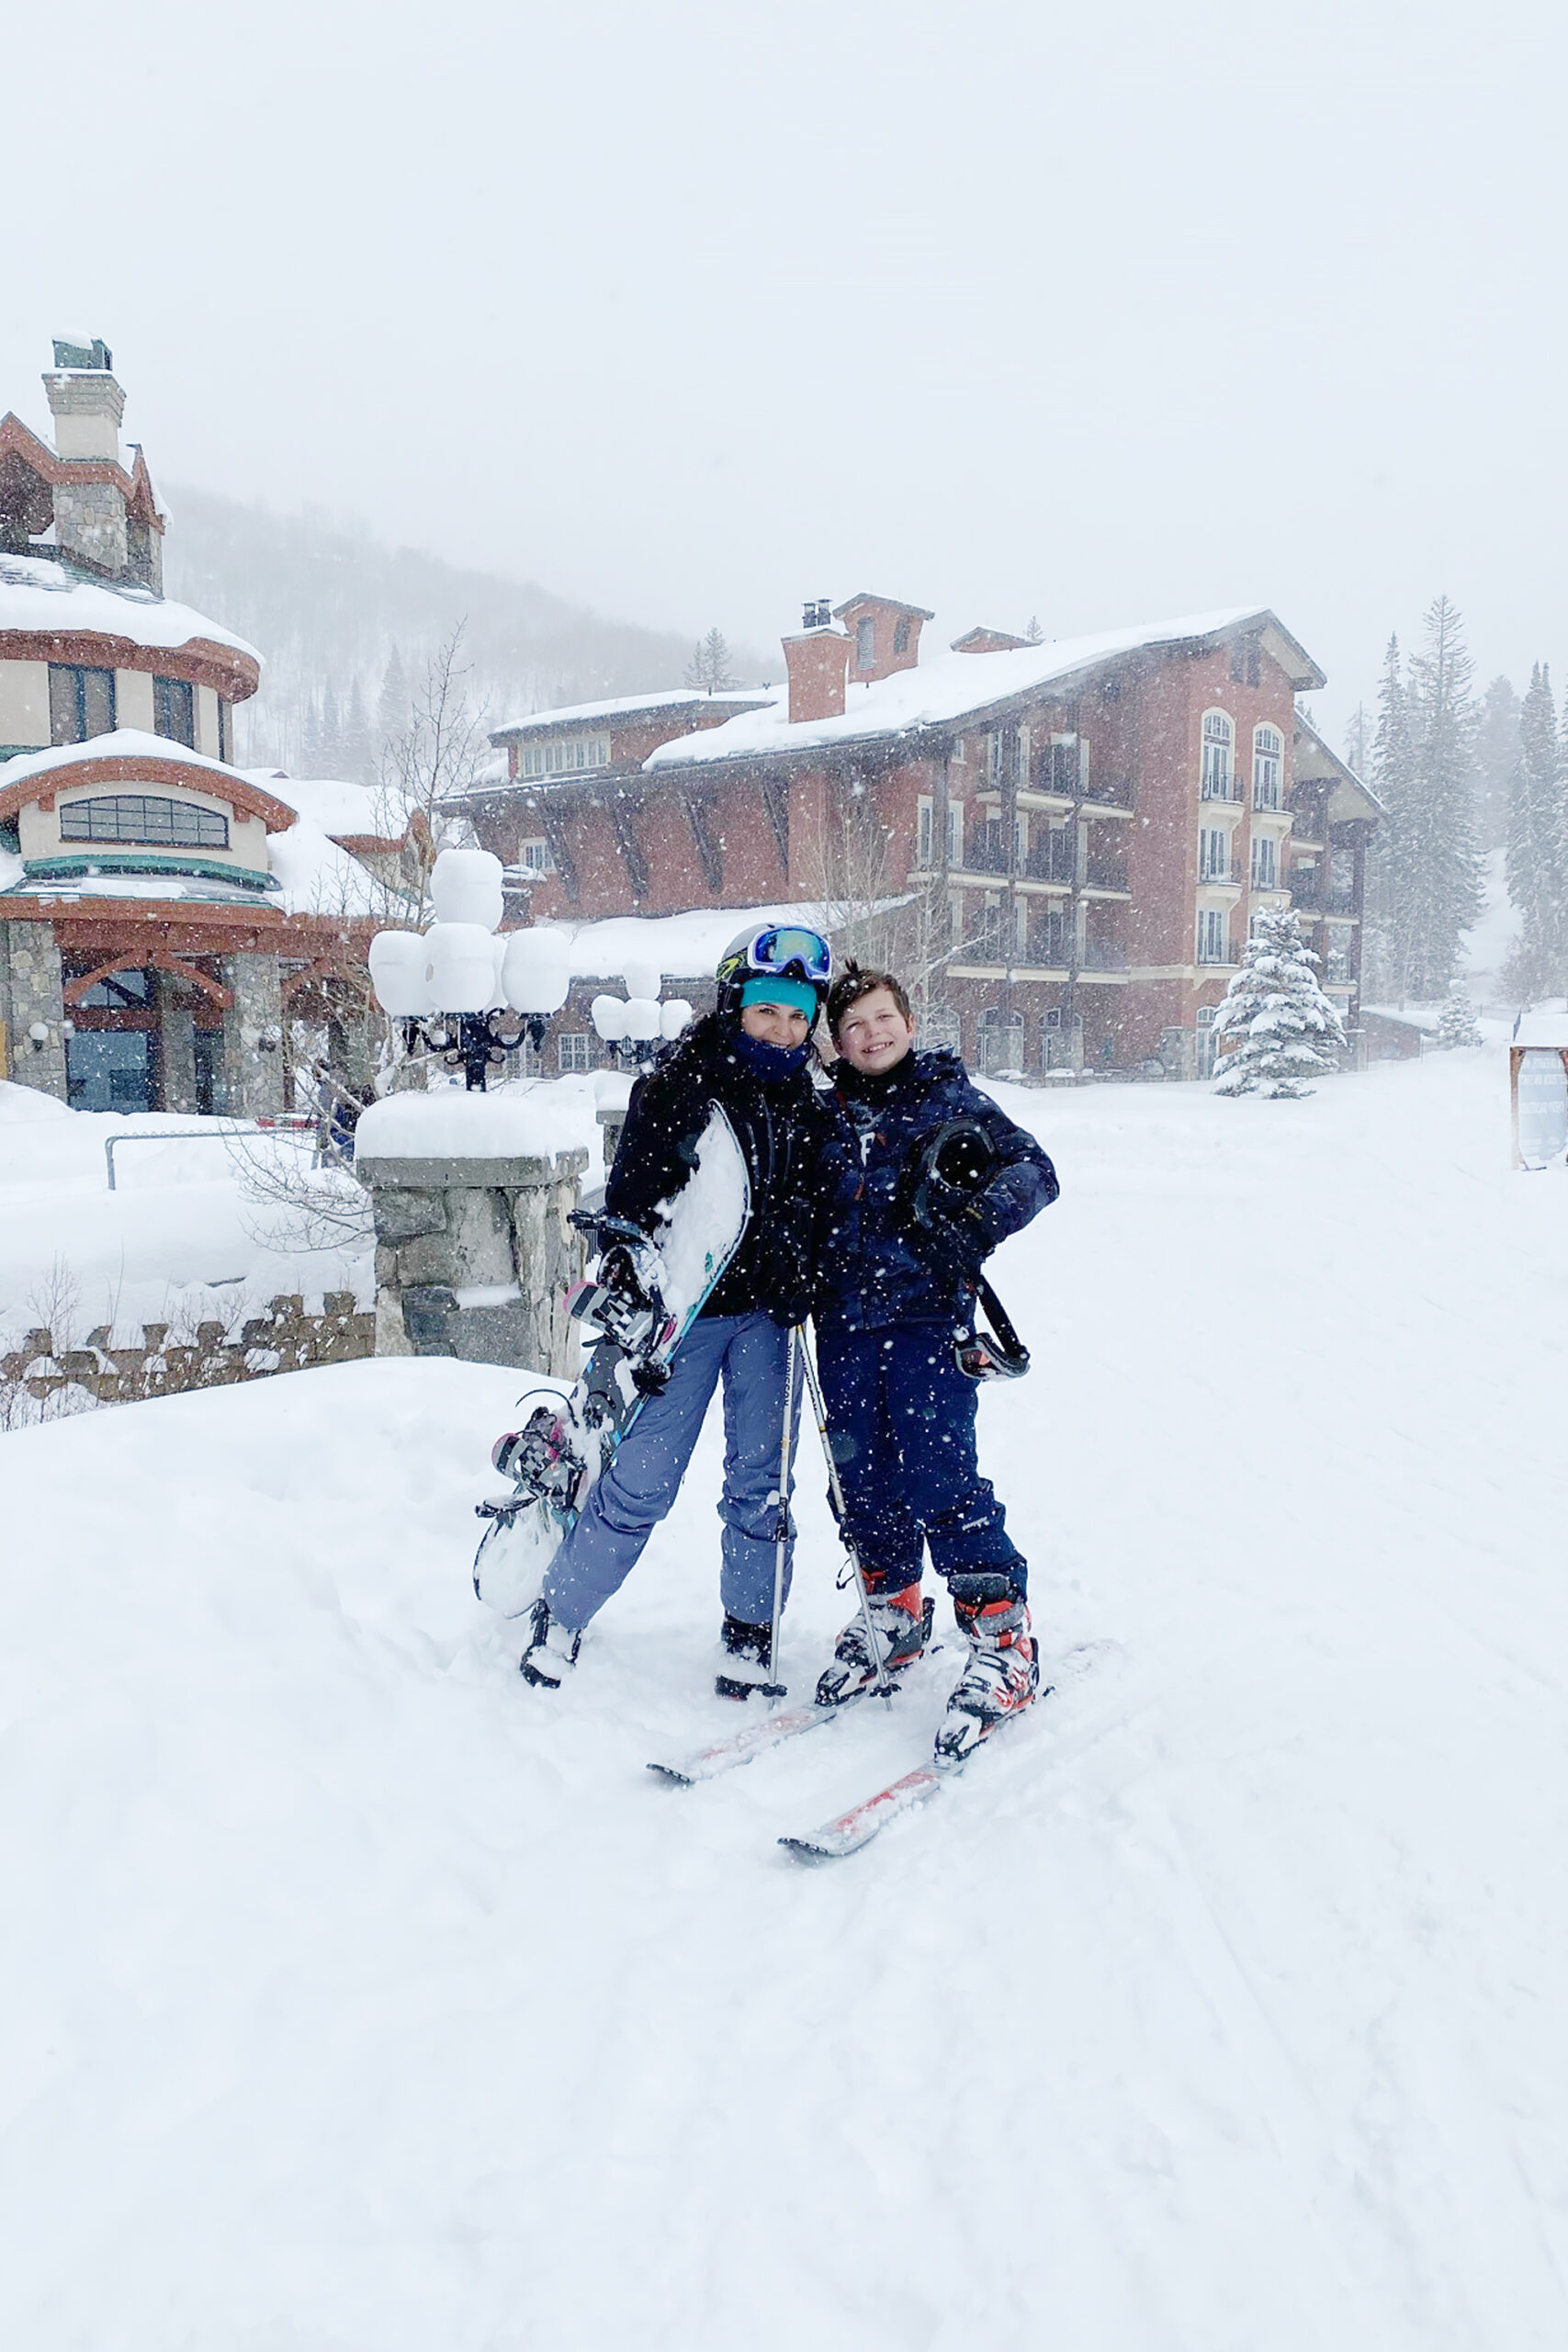 Our Utah Winter Travel Guide is out! Sharing what to Pack and where to Go for a Utah Winter Adventure. Our top 5 winter adventures! Skiing Solitude Mountain Resort || Darling Darleen Top CT Lifestyle Blogger